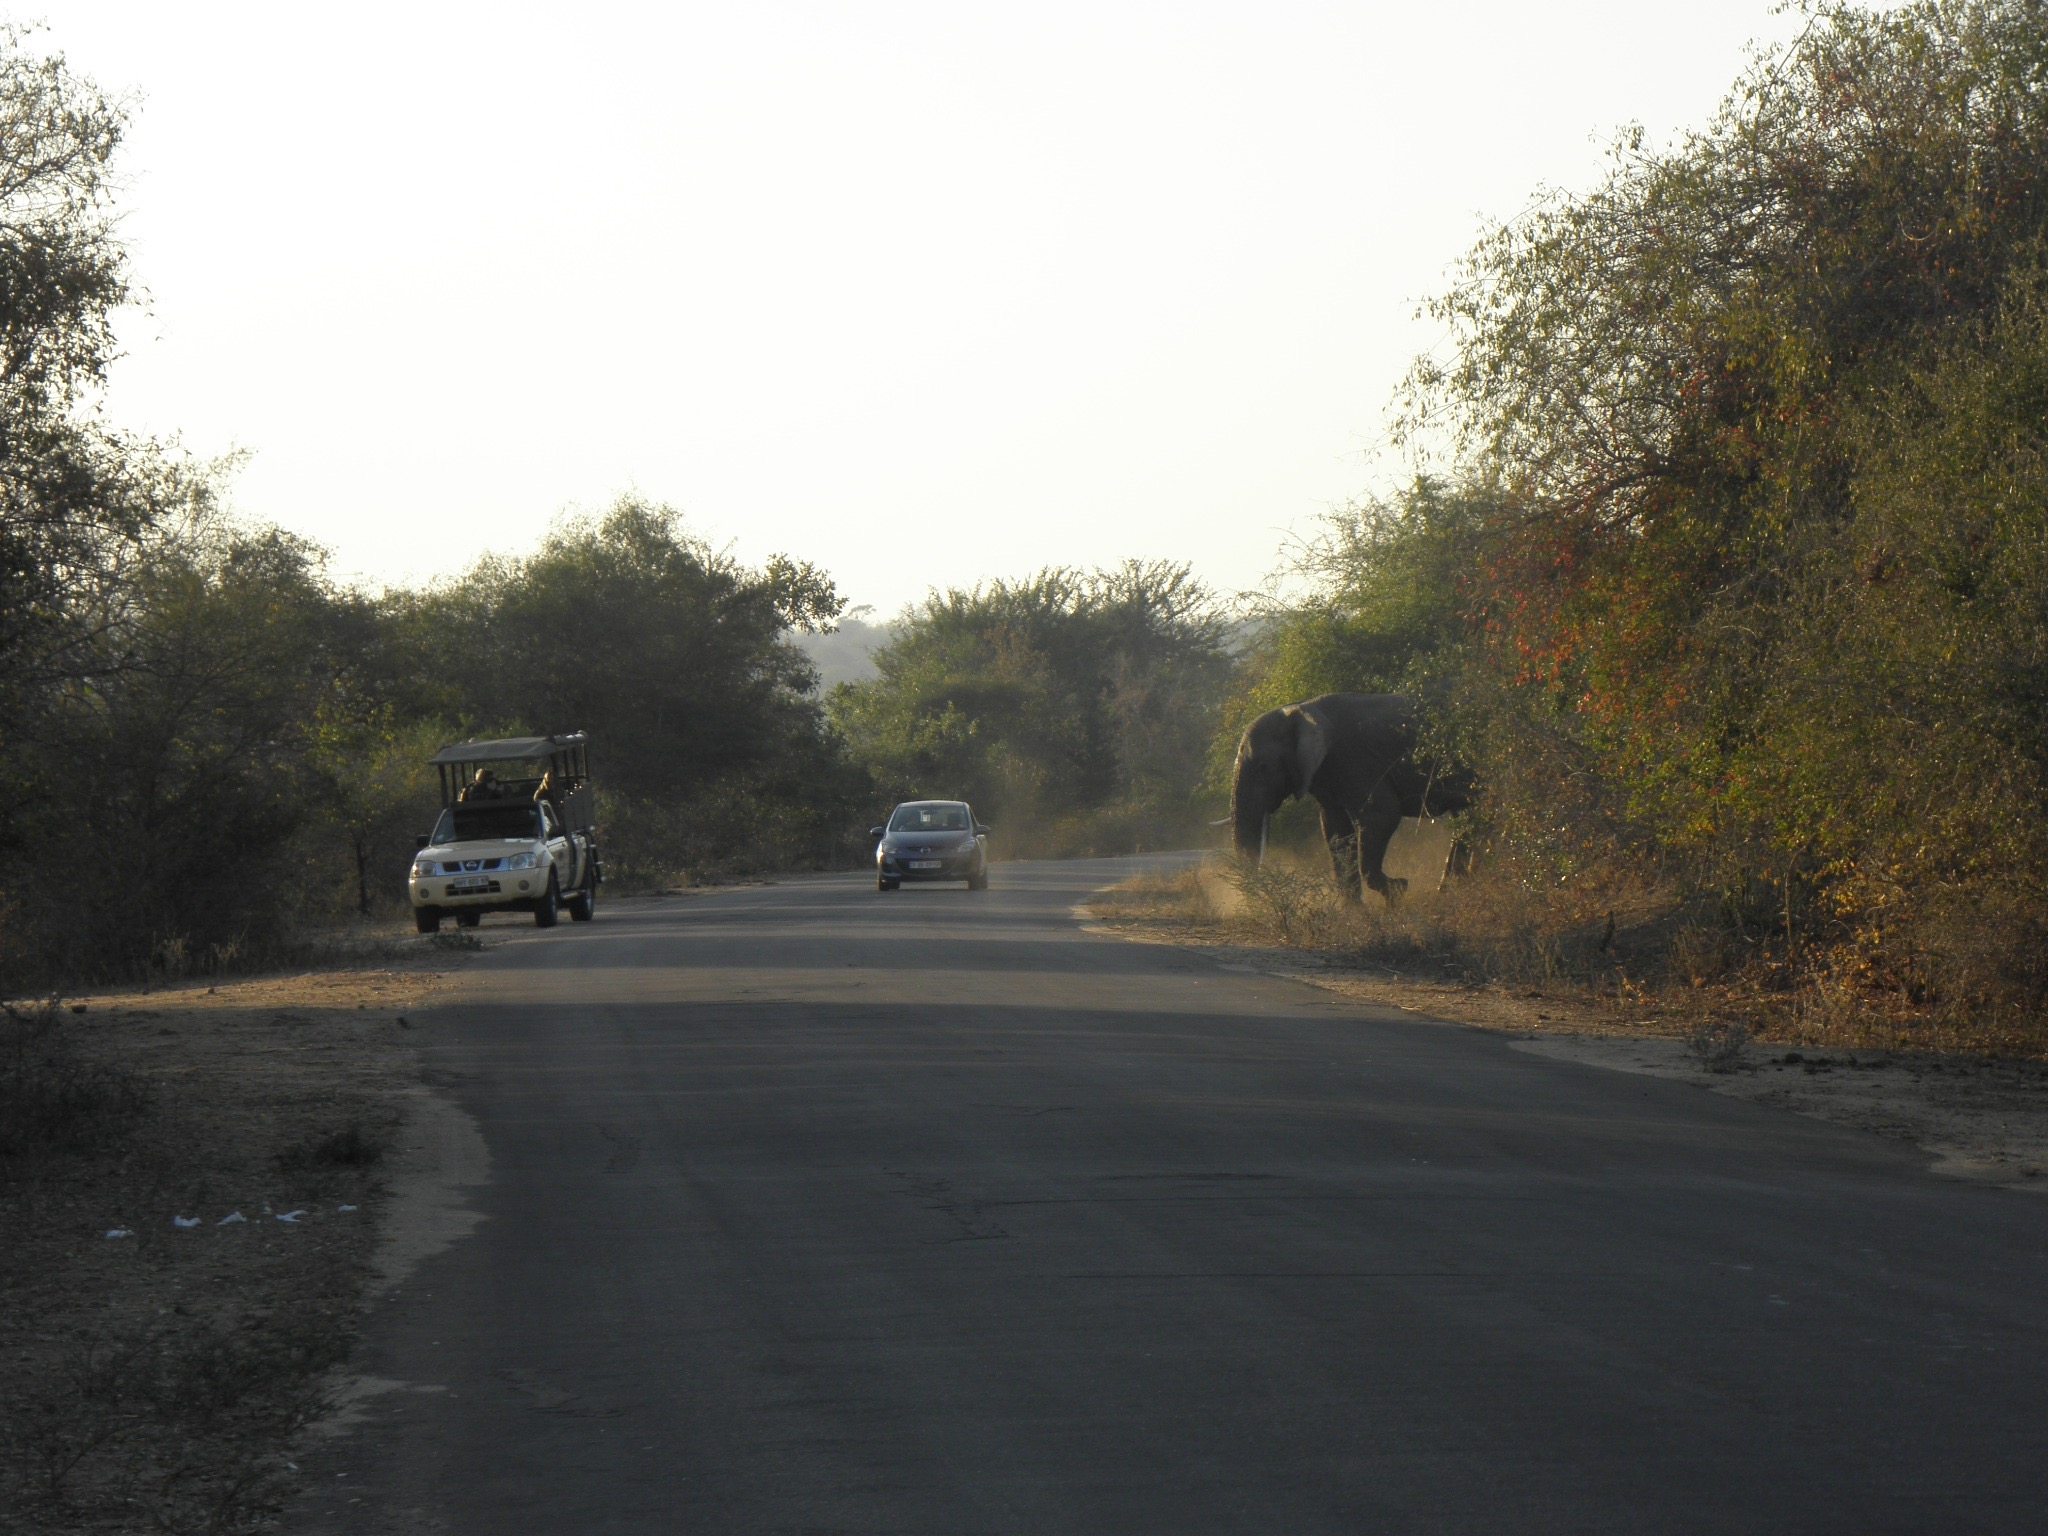 This elephant was n a really bad mood. Ear-flapping is a warning, but ears flattened against the head and the trunk curled up could mean a serious attack is imminent.  I decided to go back the other way, and warned other motorists heading in that direction